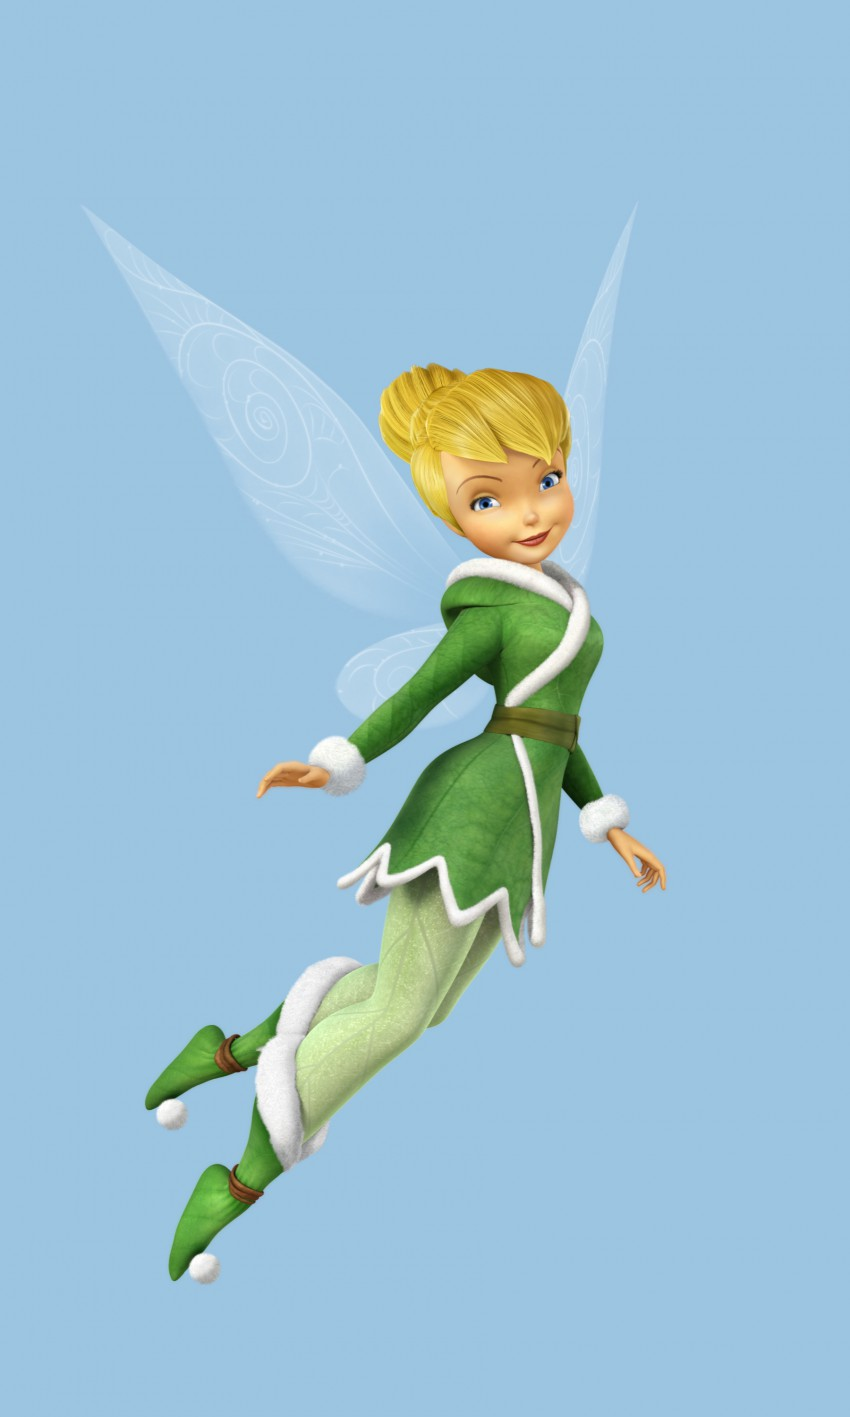 Tinkerbell costume sex pics anime download